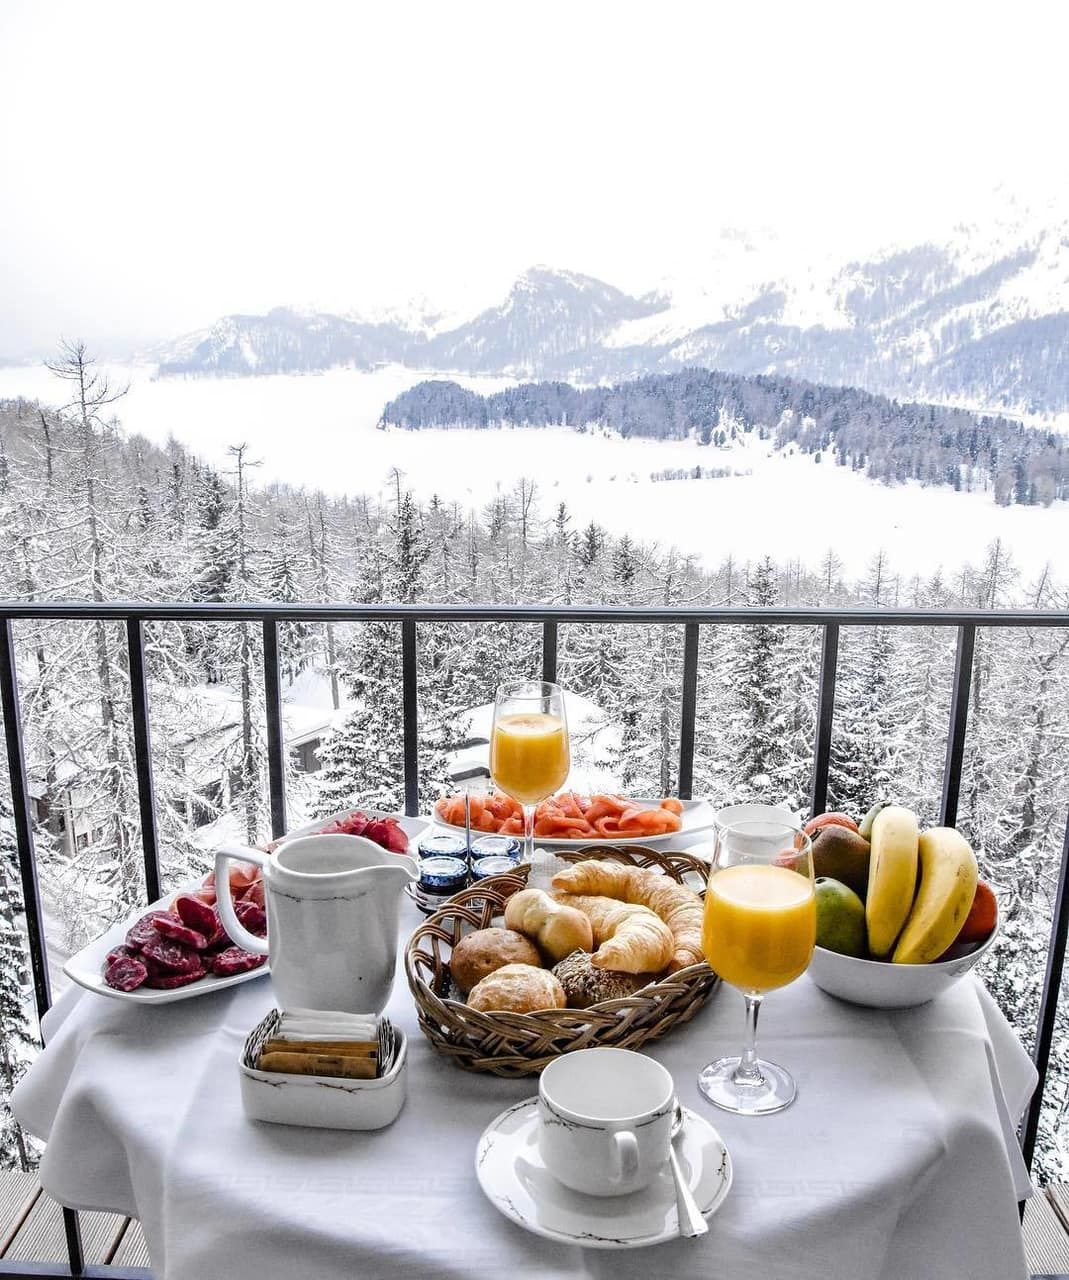 snowing, nature's beauty, snow and breakfast with a view